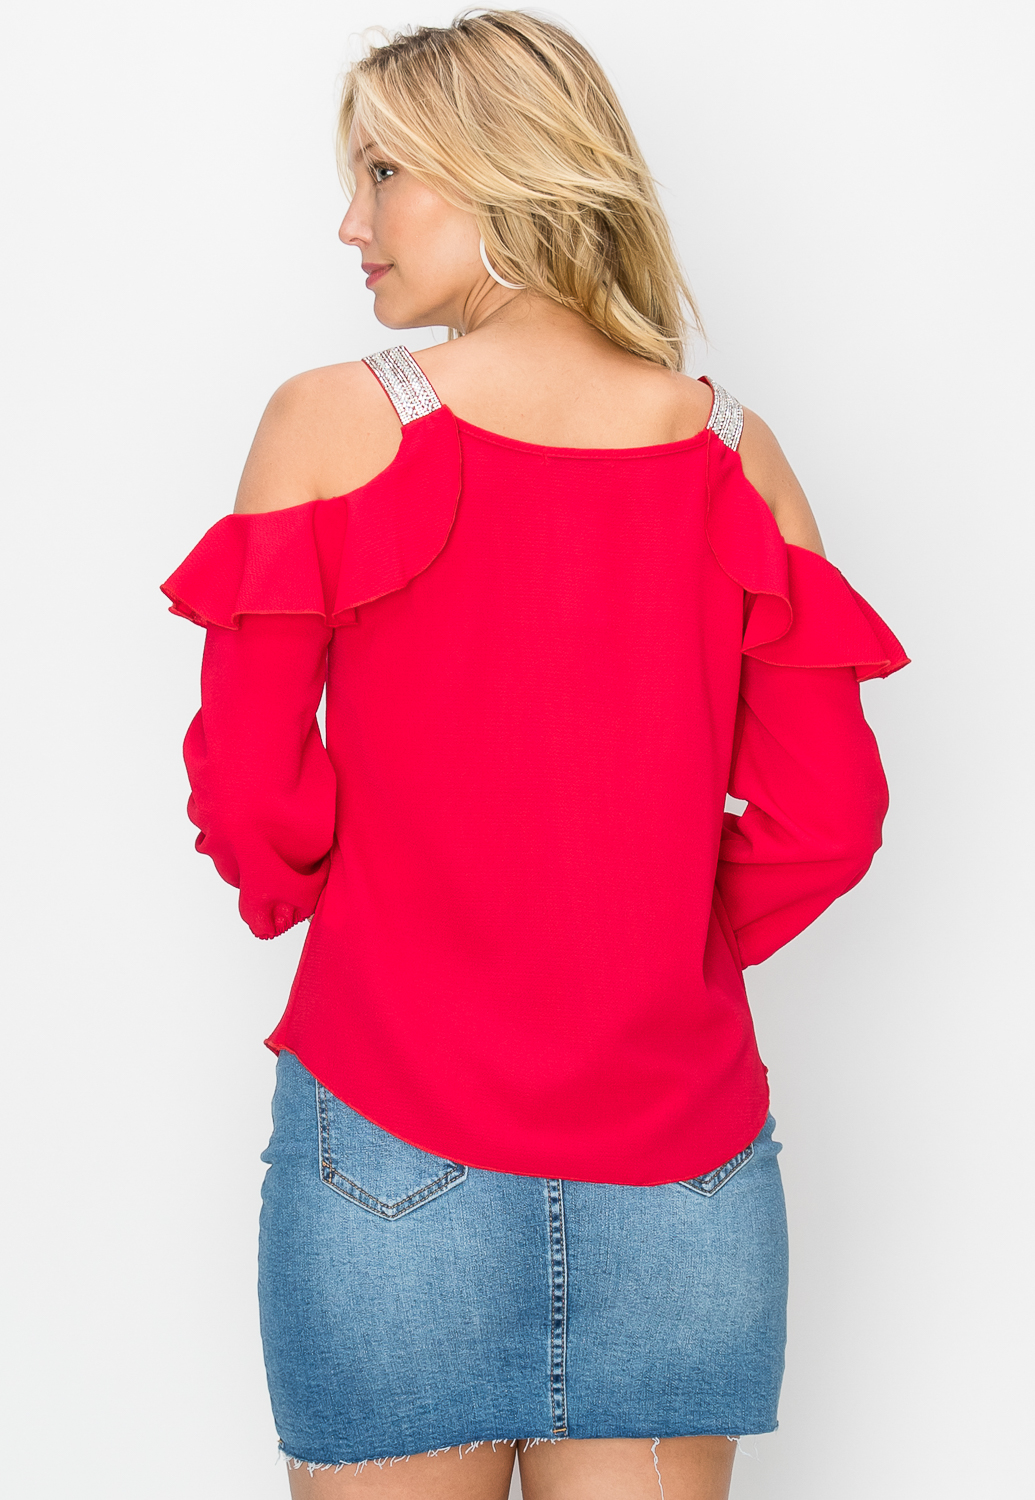 Rhinestone Embellished Ruffle Detail Top